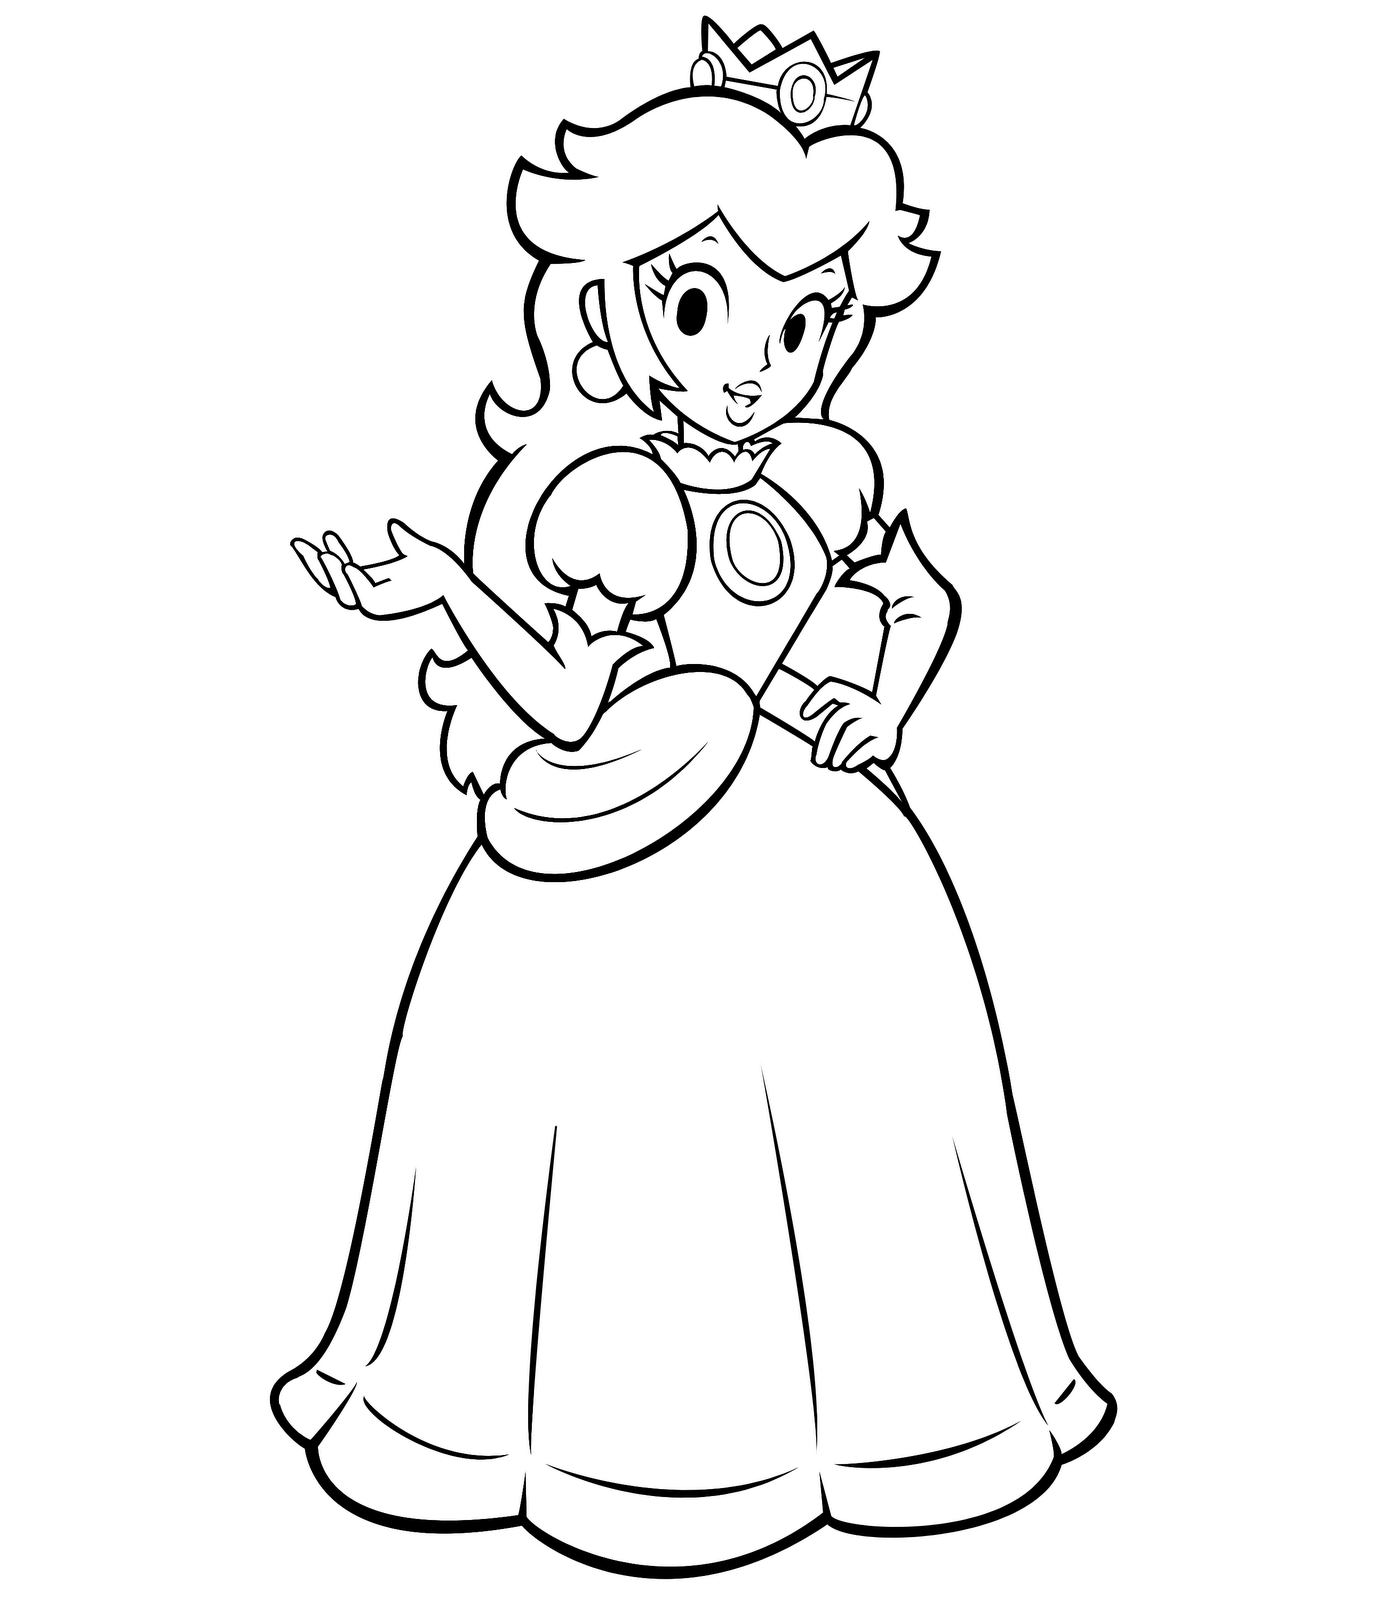 princess-peach coloring pages,printable,coloring pages